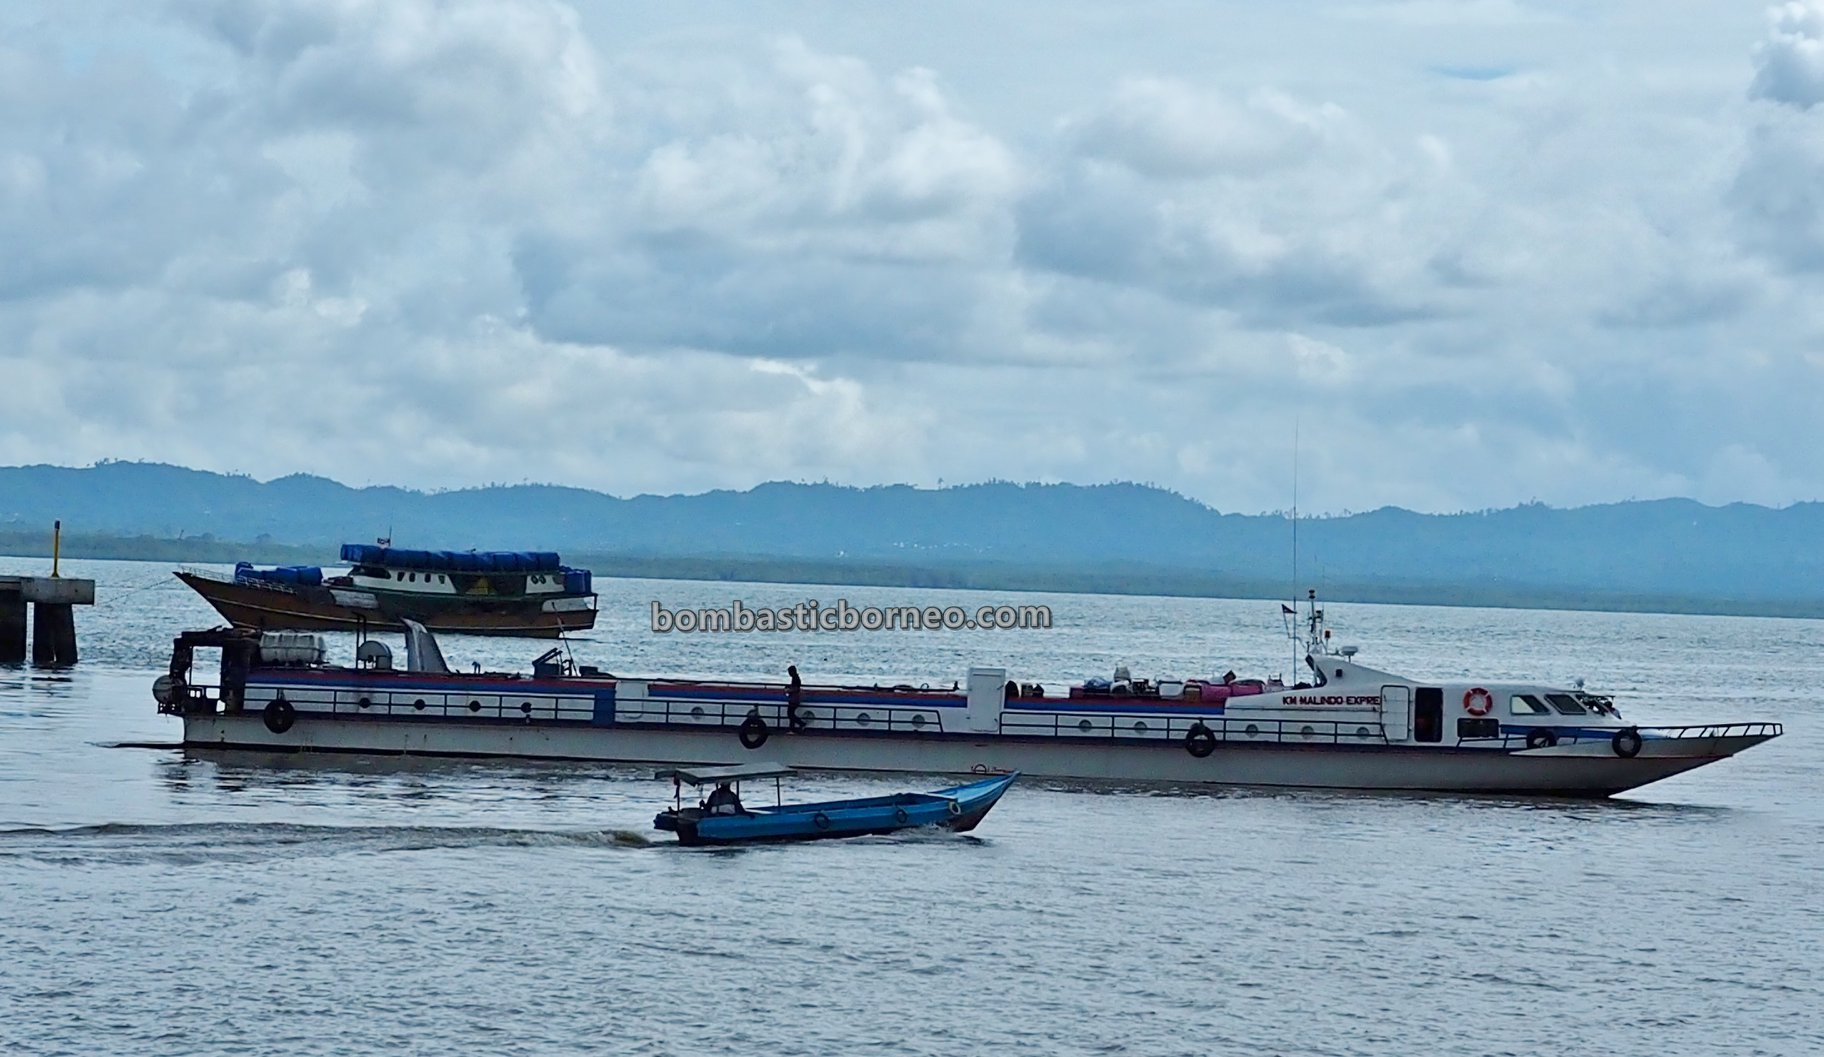 transportation, Ferry port, terminal feri, backpackers, destination, exploration, Pekan, town, Malaysia, Sabah, Tourism, tourist attraction, Travel Guide, 跨境婆罗洲游踪, 马来西亚沙巴, 斗湖轮渡码头